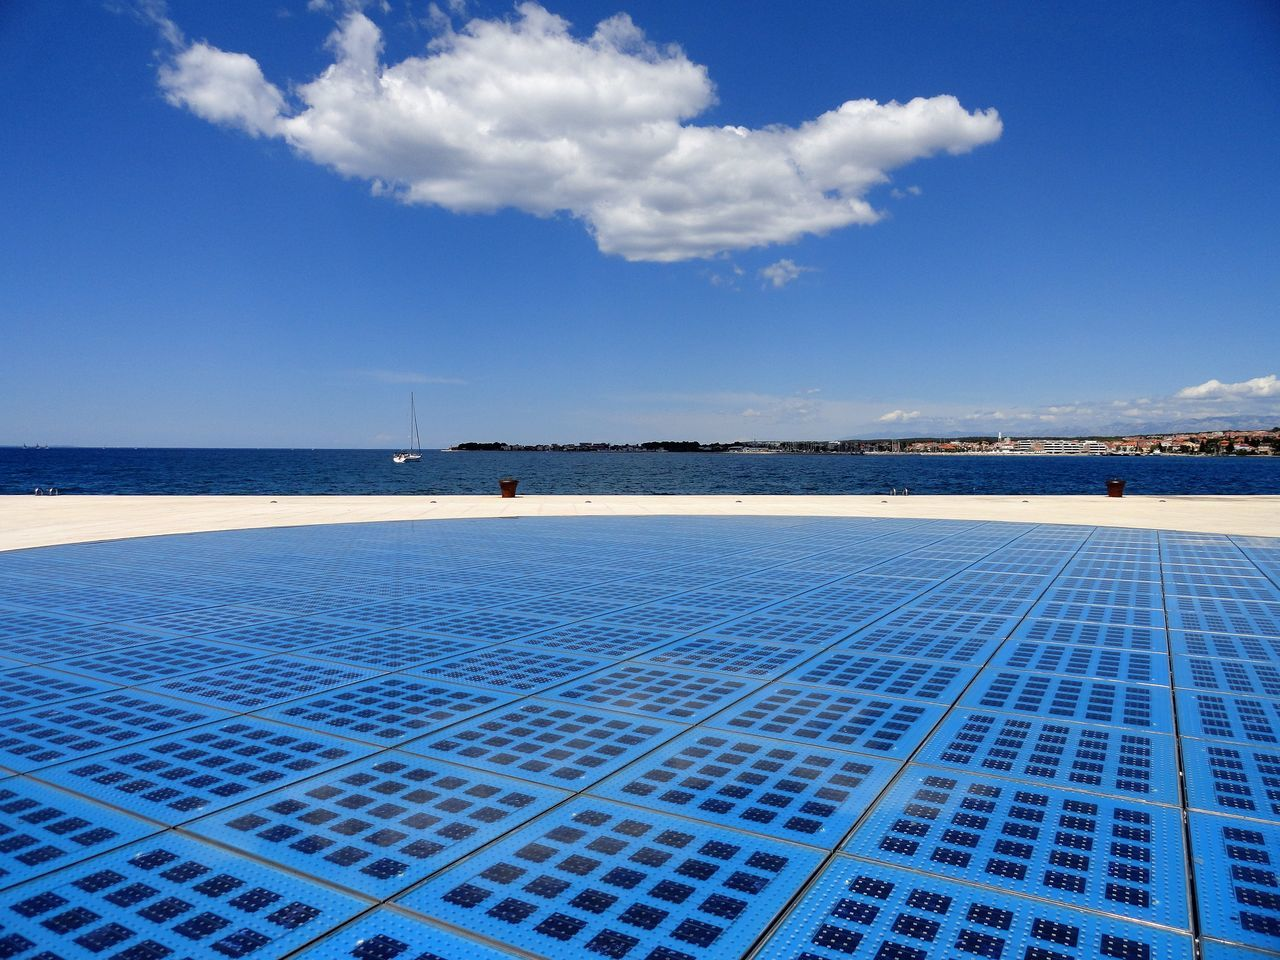 Pure Blue. Beauty In Nature Blue Cloud Cloud - Sky Croatia Day Idyllic Leisure Activity Lifestyles Nature Outdoors Scenics Sea Sky Solar Sunny Tourism Tourist Attraction  Tranquil Scene Tranquility Travel Destinations Vacations Water Zadar Color Palette